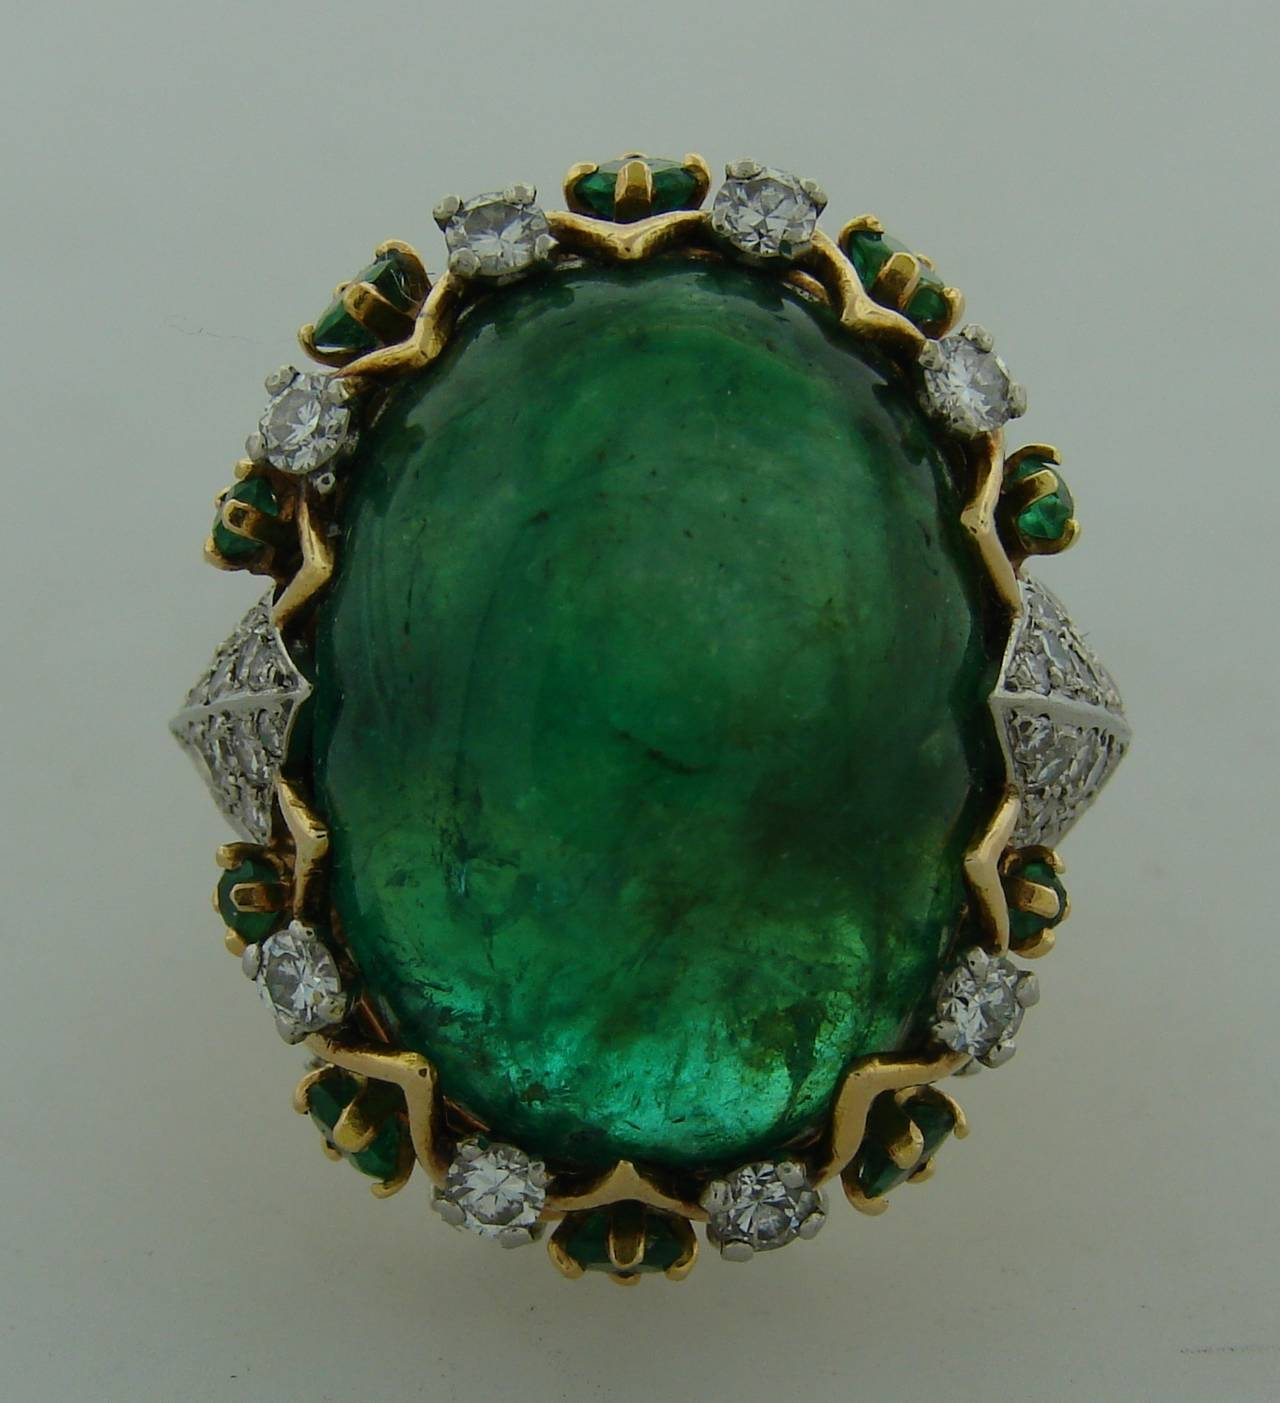 Sterle Cabochon Emerald Diamond Gold Ring For Sale At 1stdibs